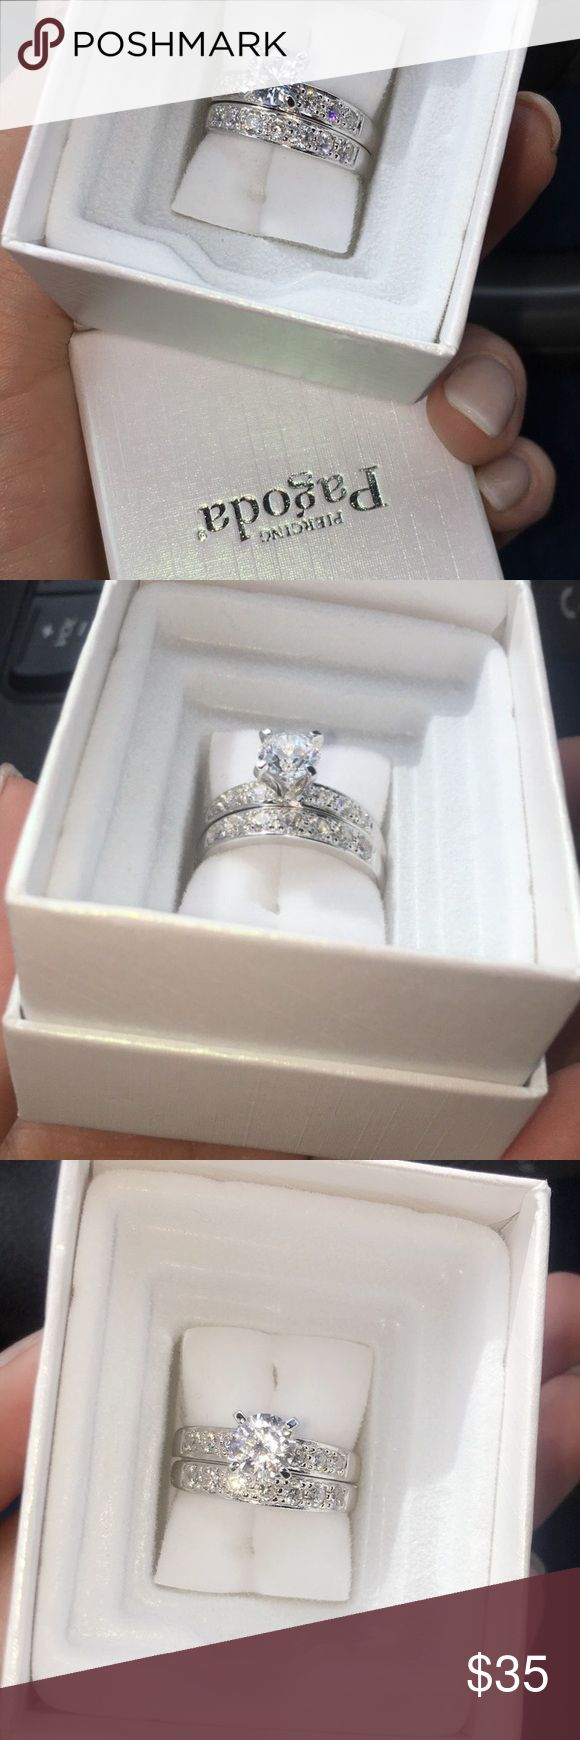 Brand New Piercing Pagoda Bridal Set brand new, never worn. tried to exchange it because my boyfriend bought me a size too big but he paid cash and doesn't have the tag on it :( NOT tiffany, just for exposure Tiffany & Co. Jewelry Rings